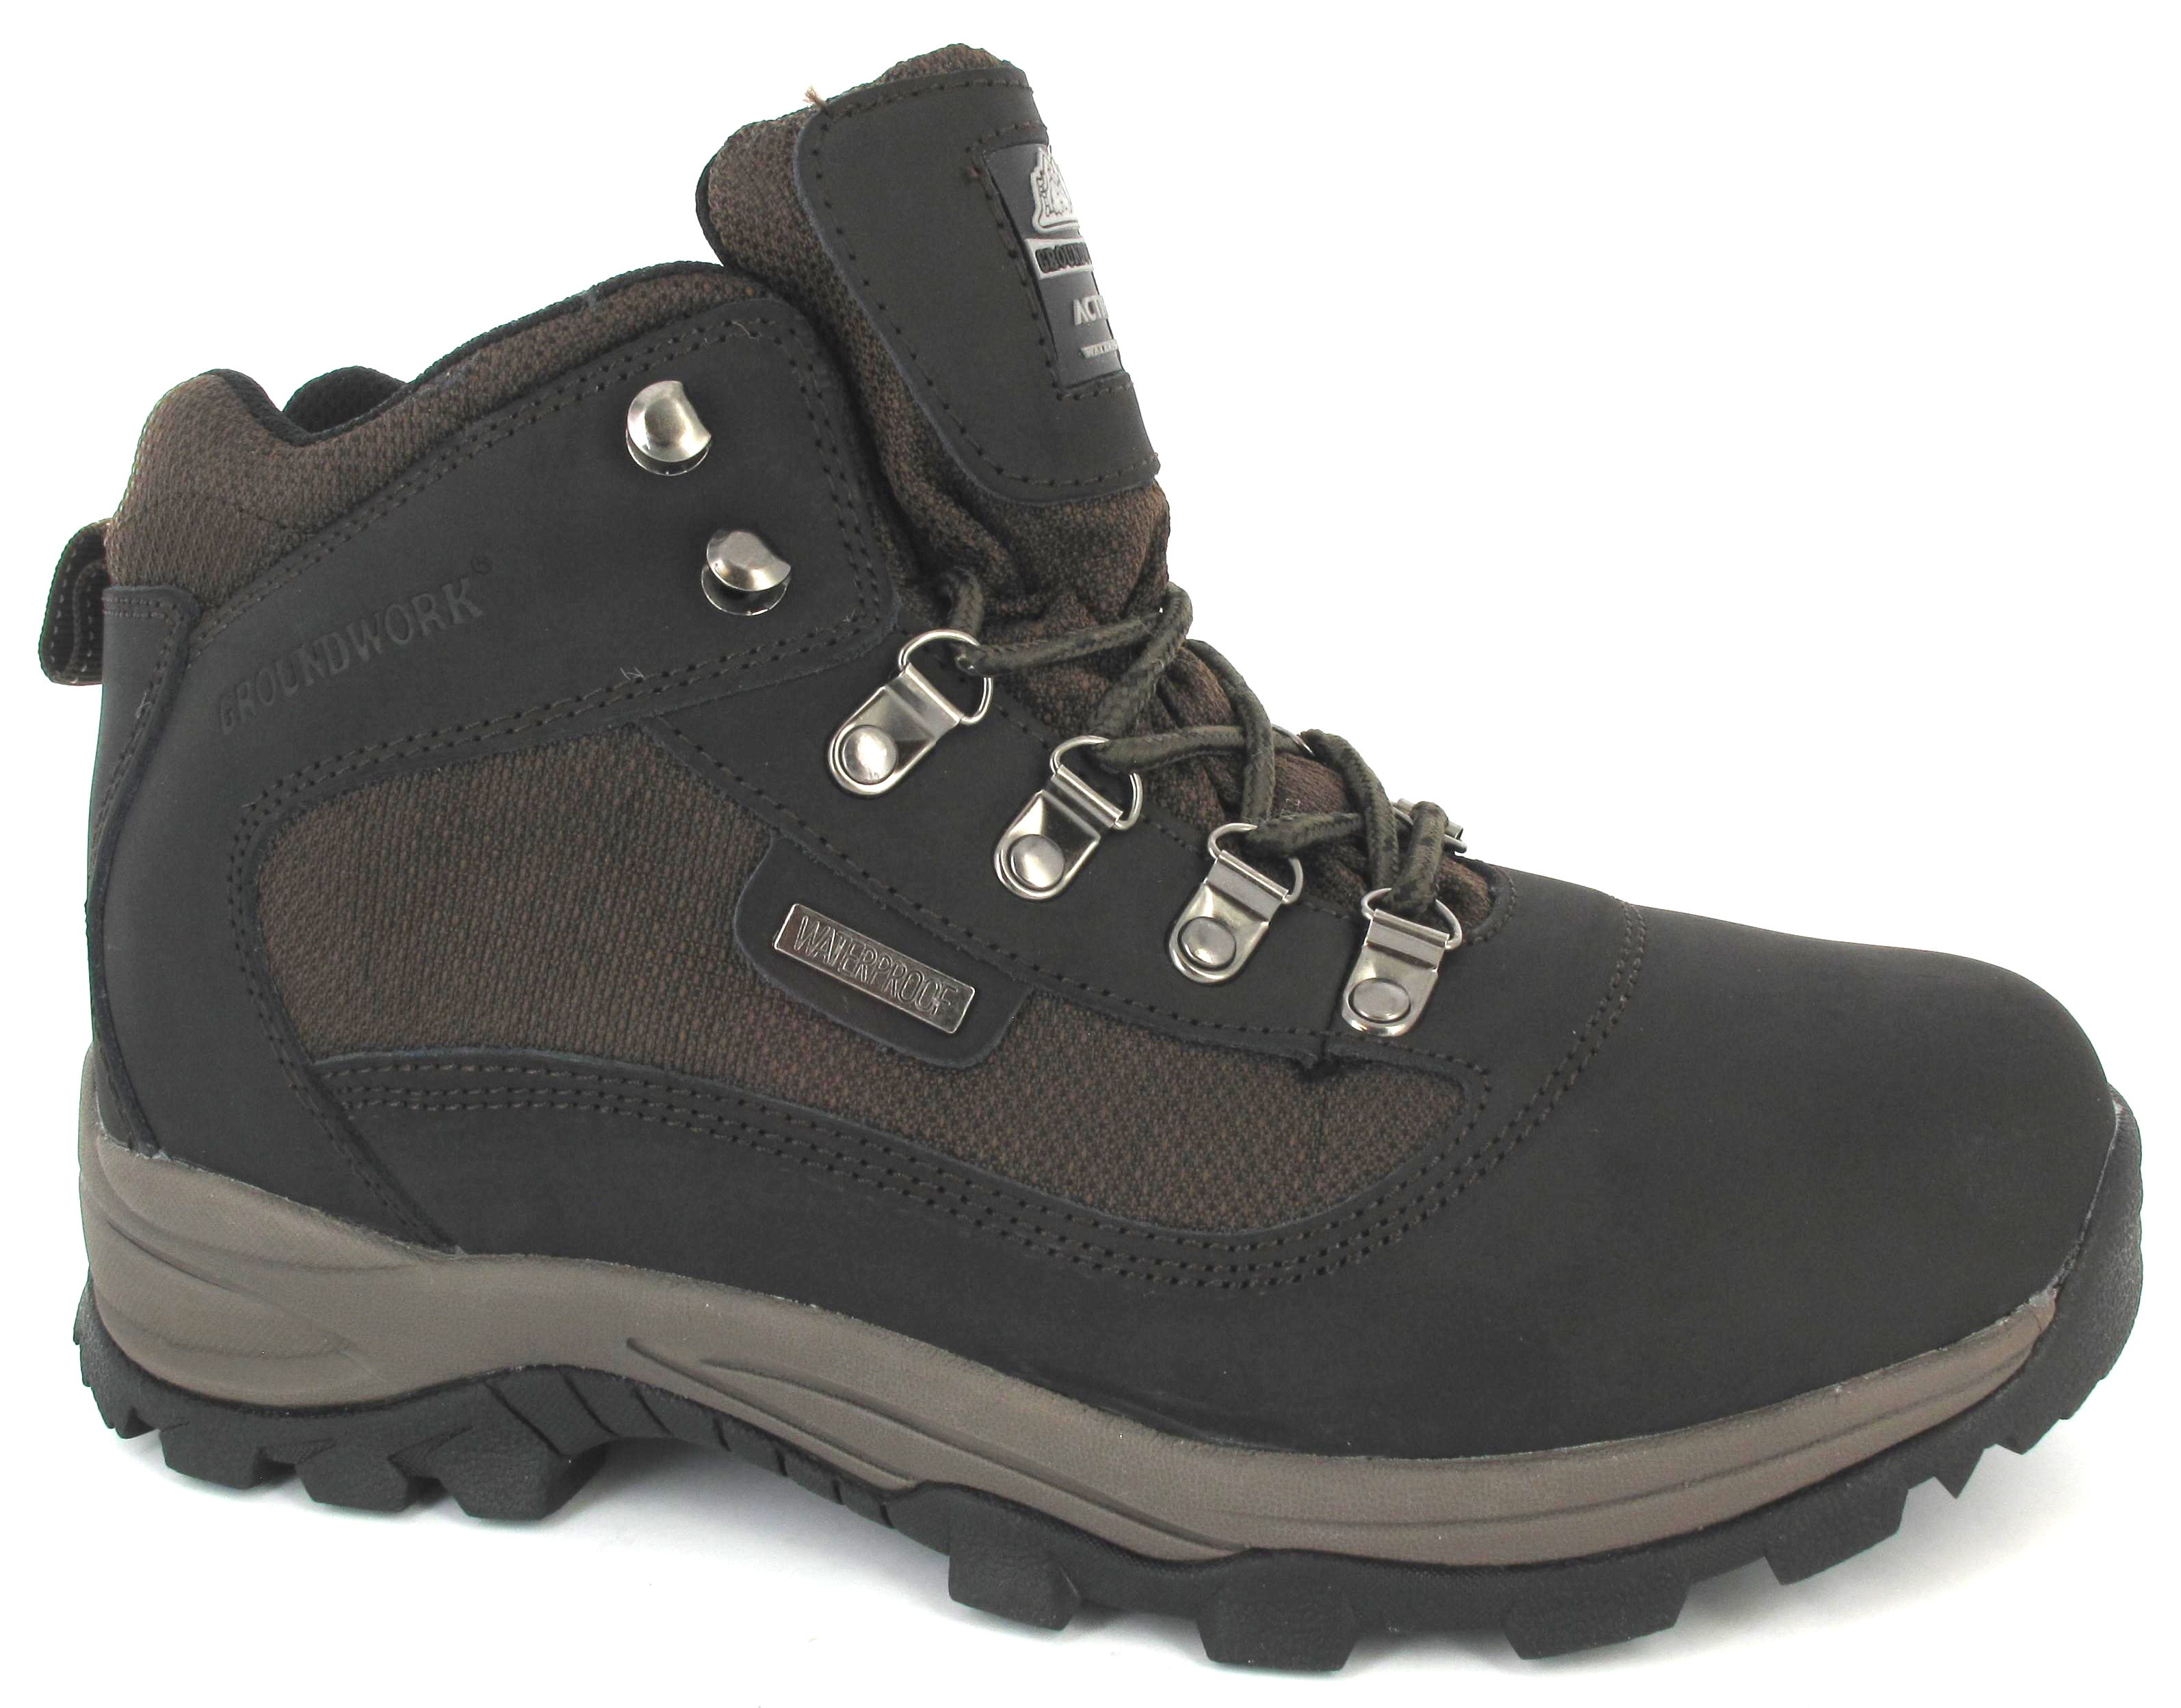 Johnscliffe Typhoon Men/'s Leather Hiking Boots